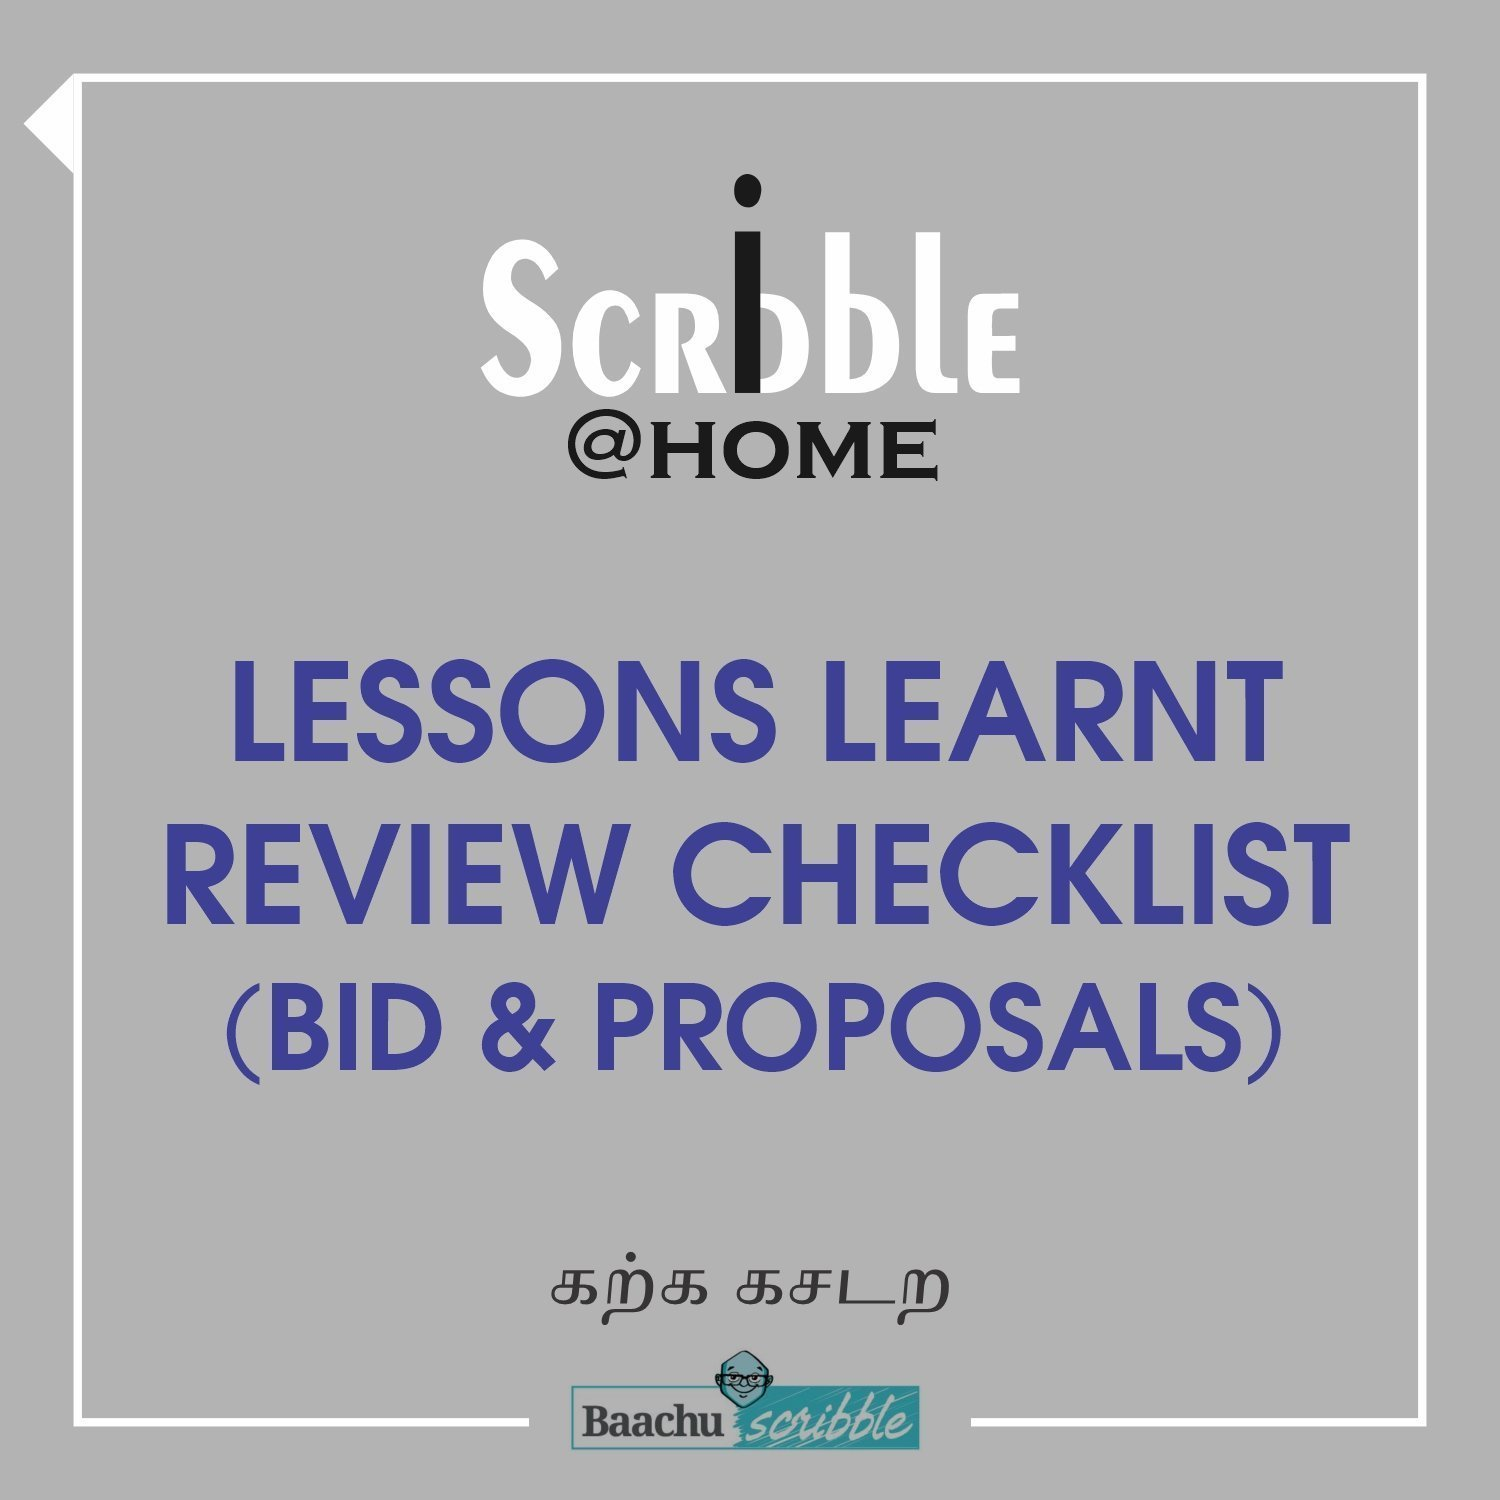 Lessons Learnt Review Checklist (Bid & Proposals)